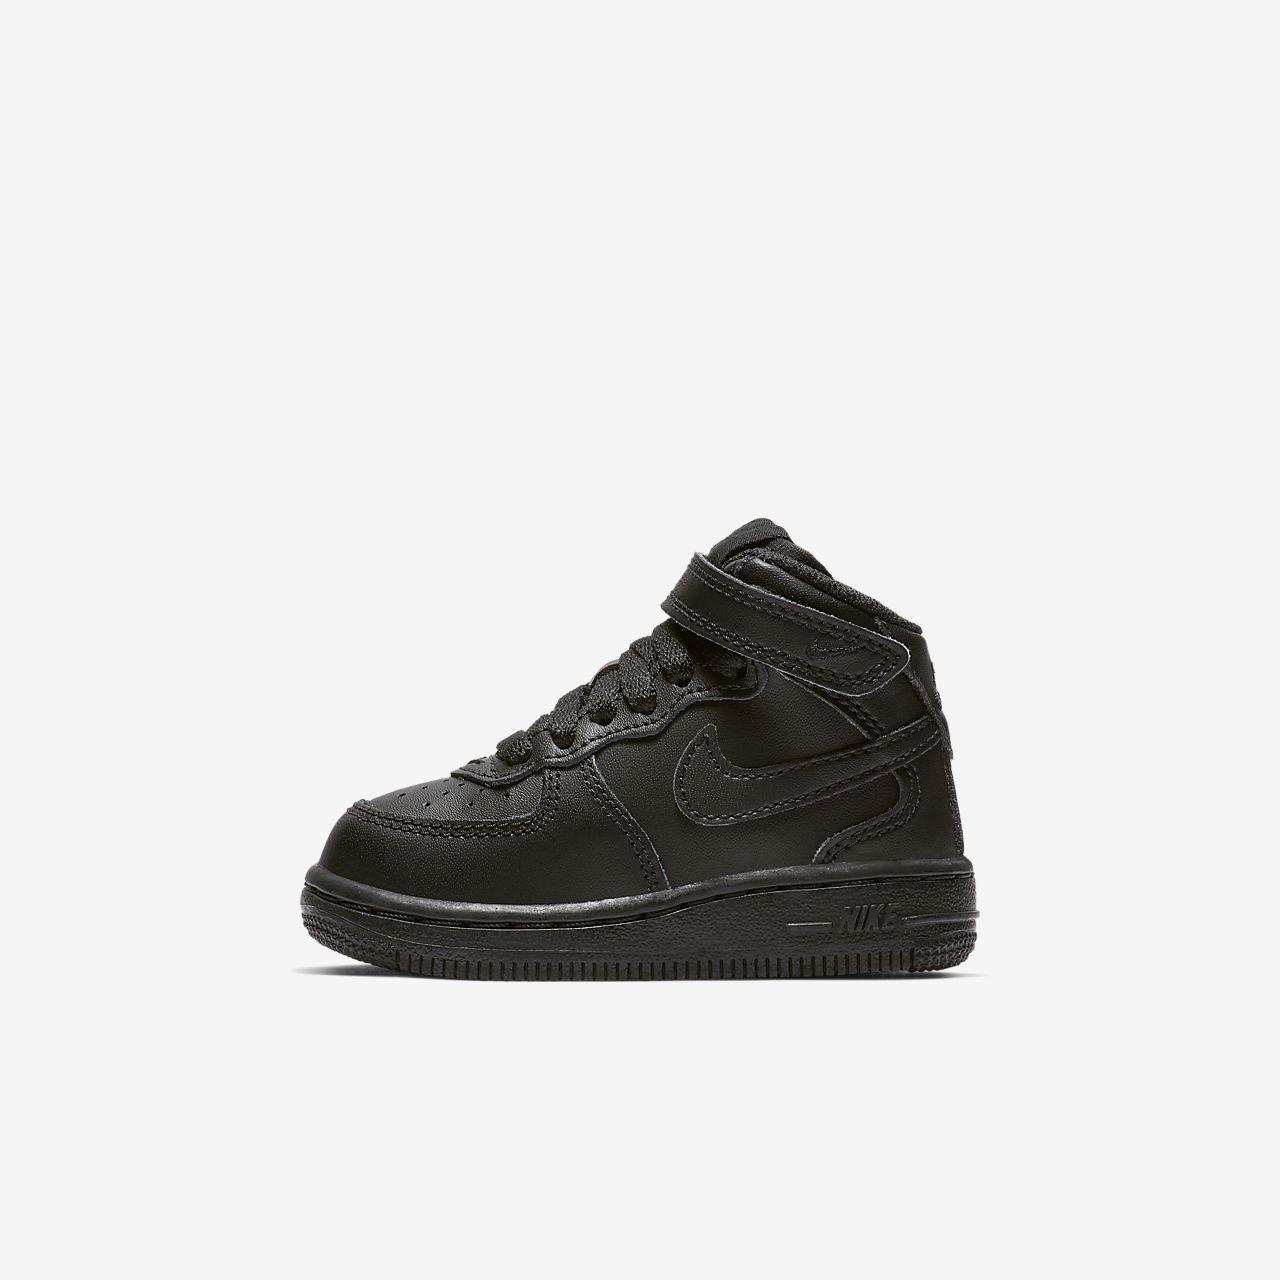 nike air force 1 boys' shoe nz